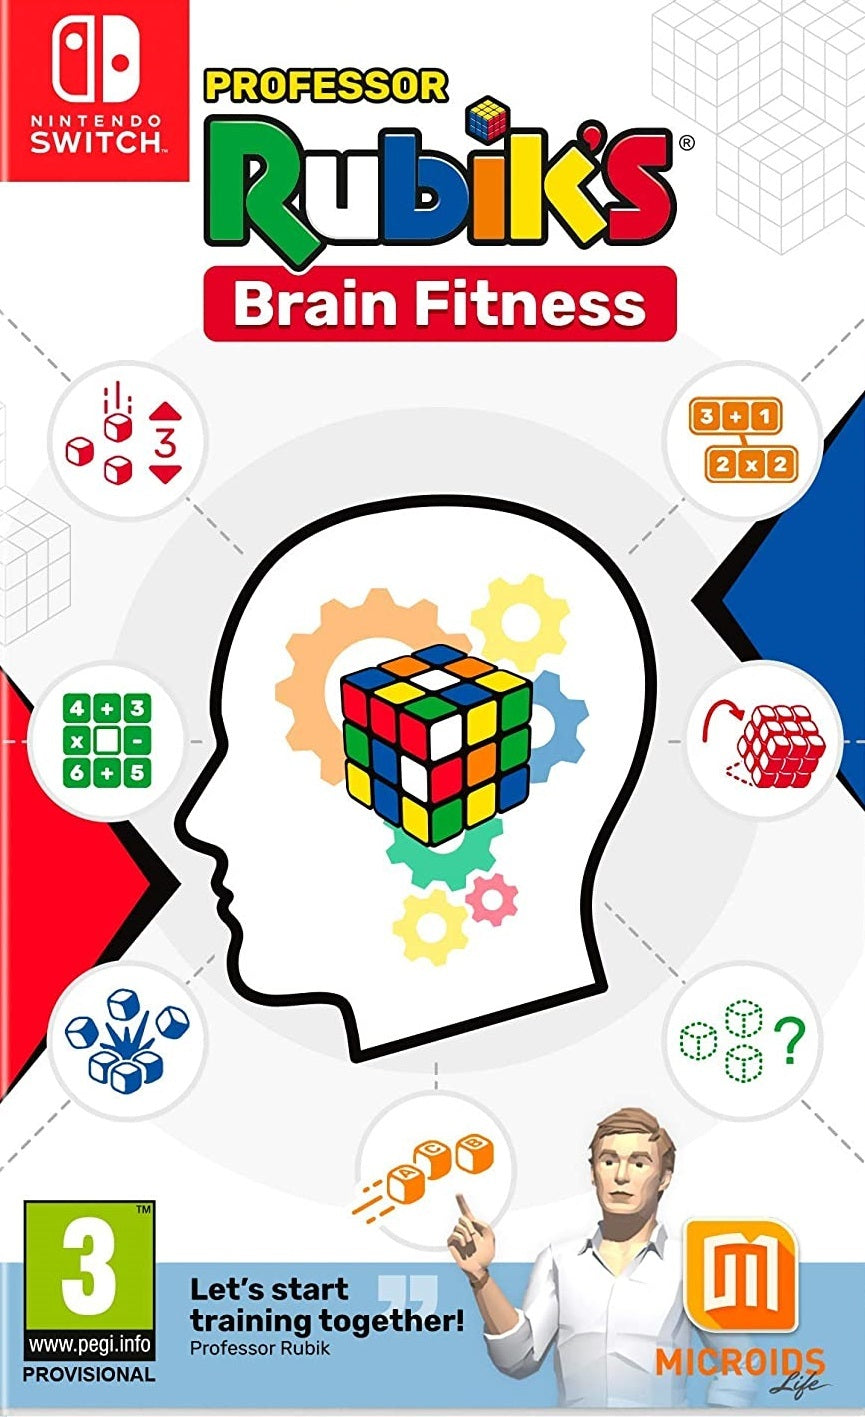 Professor Rubik's Brain Fitness - Nintendo Switch